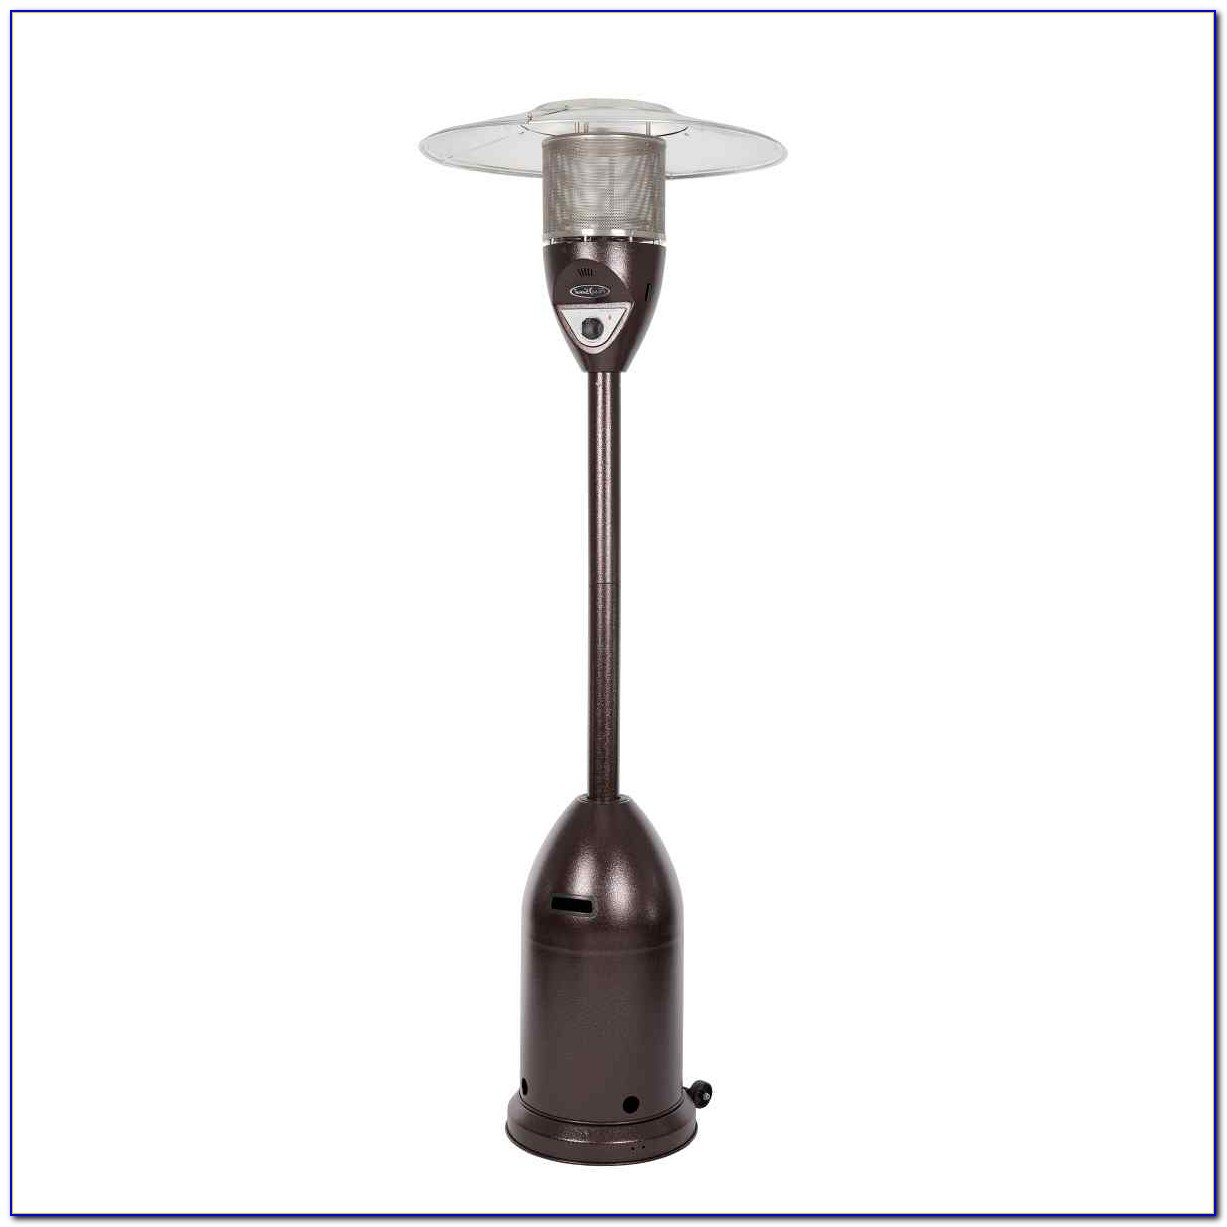 Fire Sense Deluxe Patio Heater Instructions